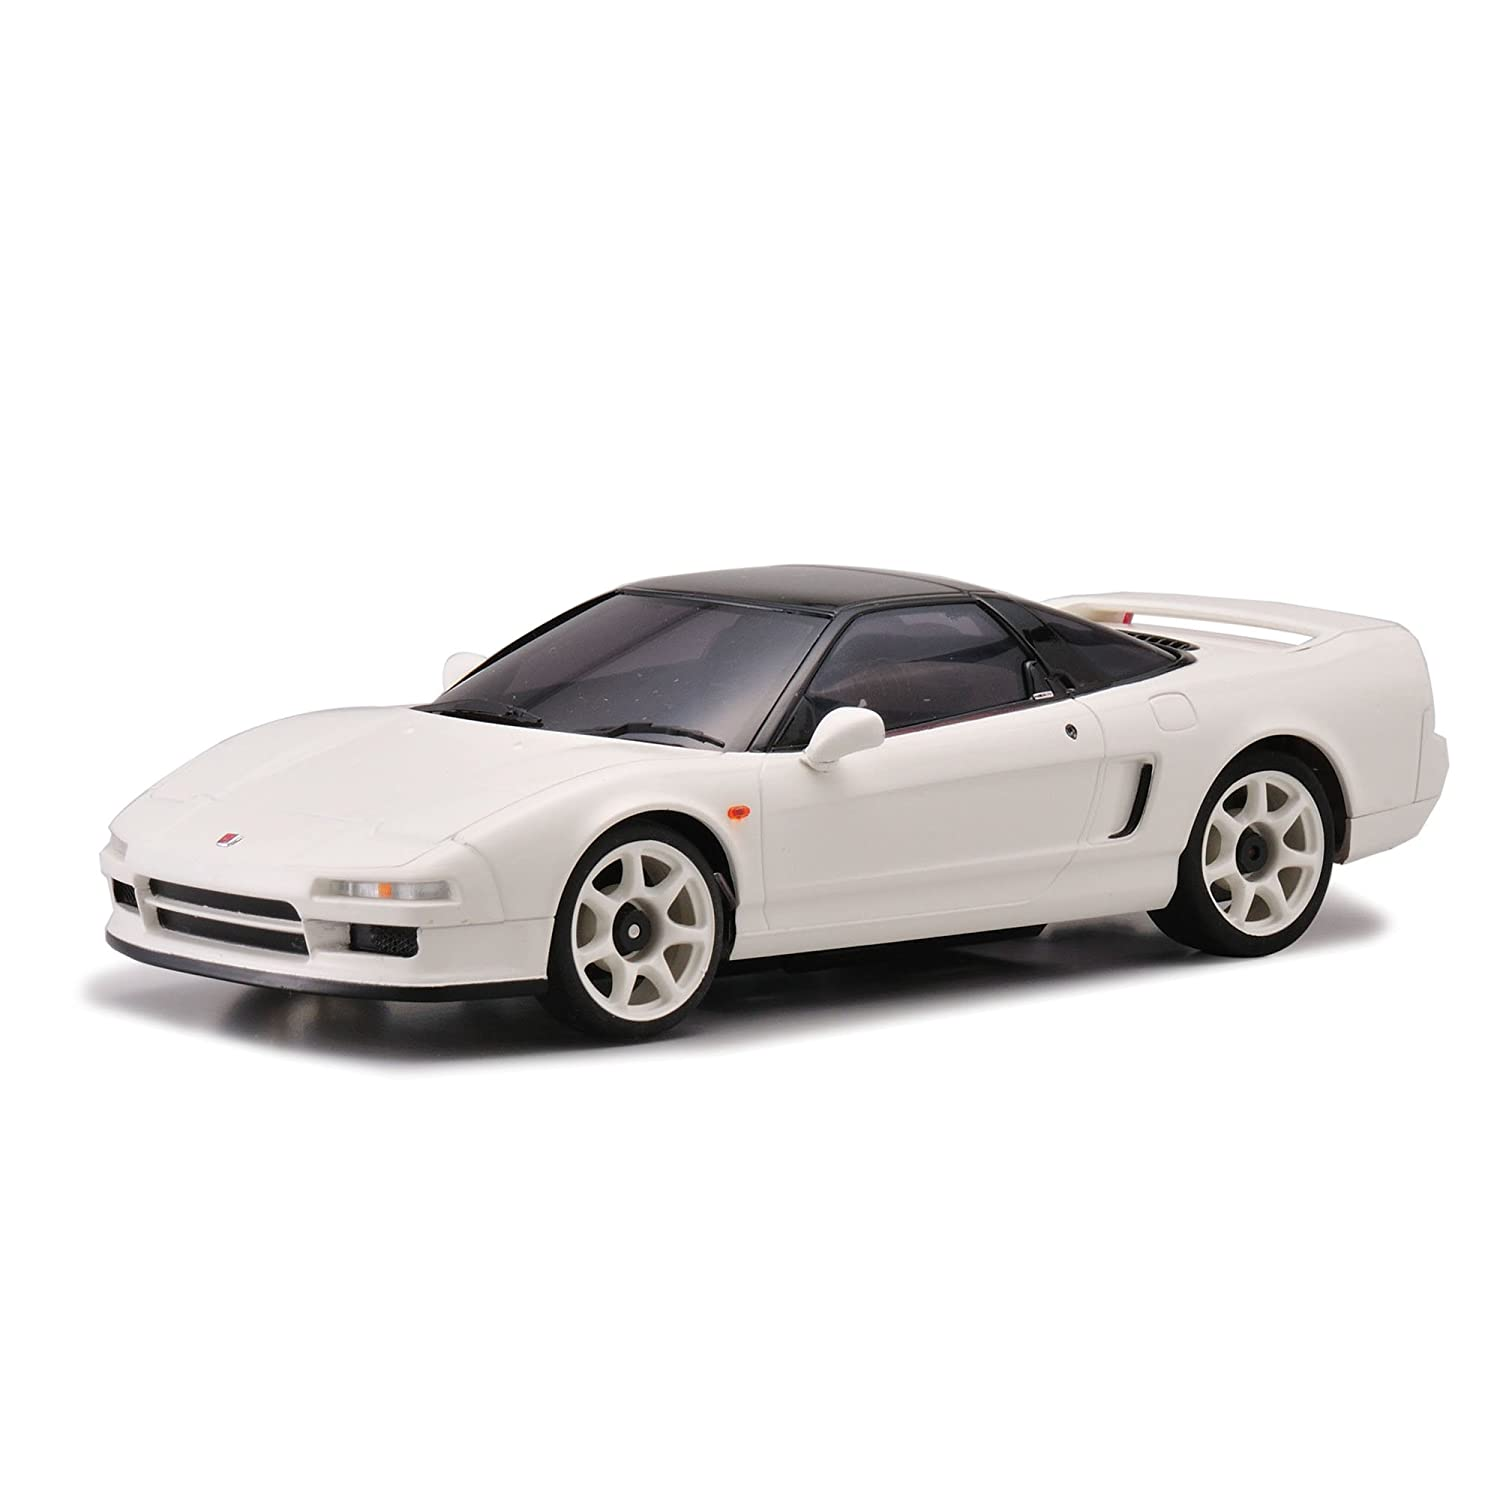 Kyosho Asc Mr 03n Rm Rc Car Parts Honda Nsx R